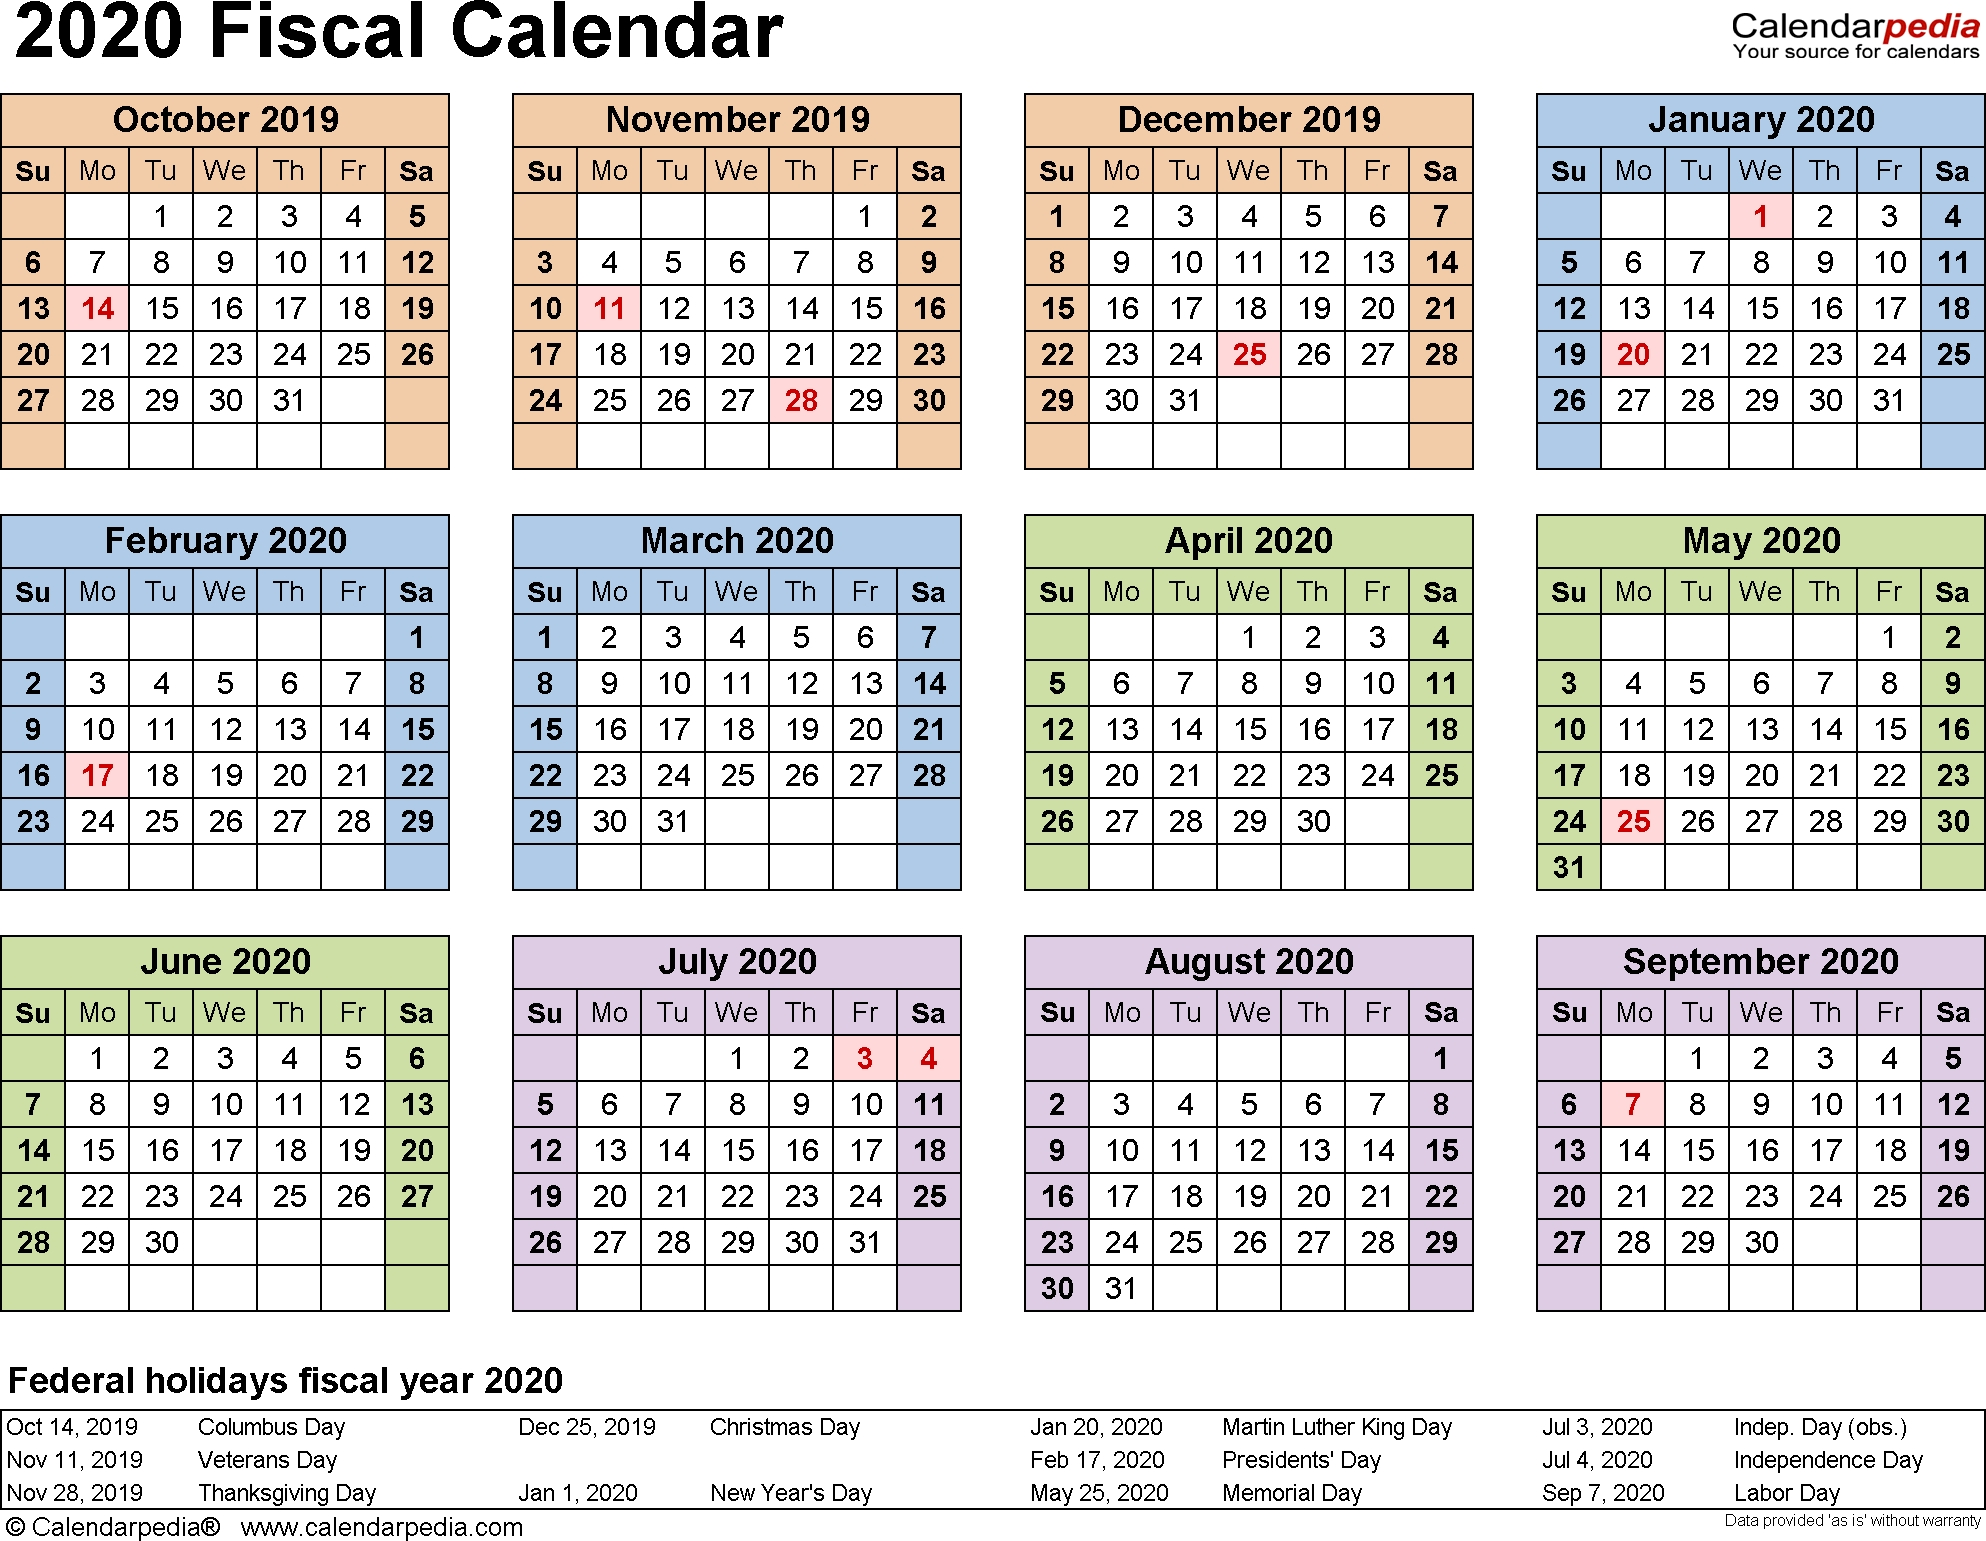 Fiscal Calendars 2020 - Free Printable Word Templates for 4 5 5 Fiscal 2020 Calendar